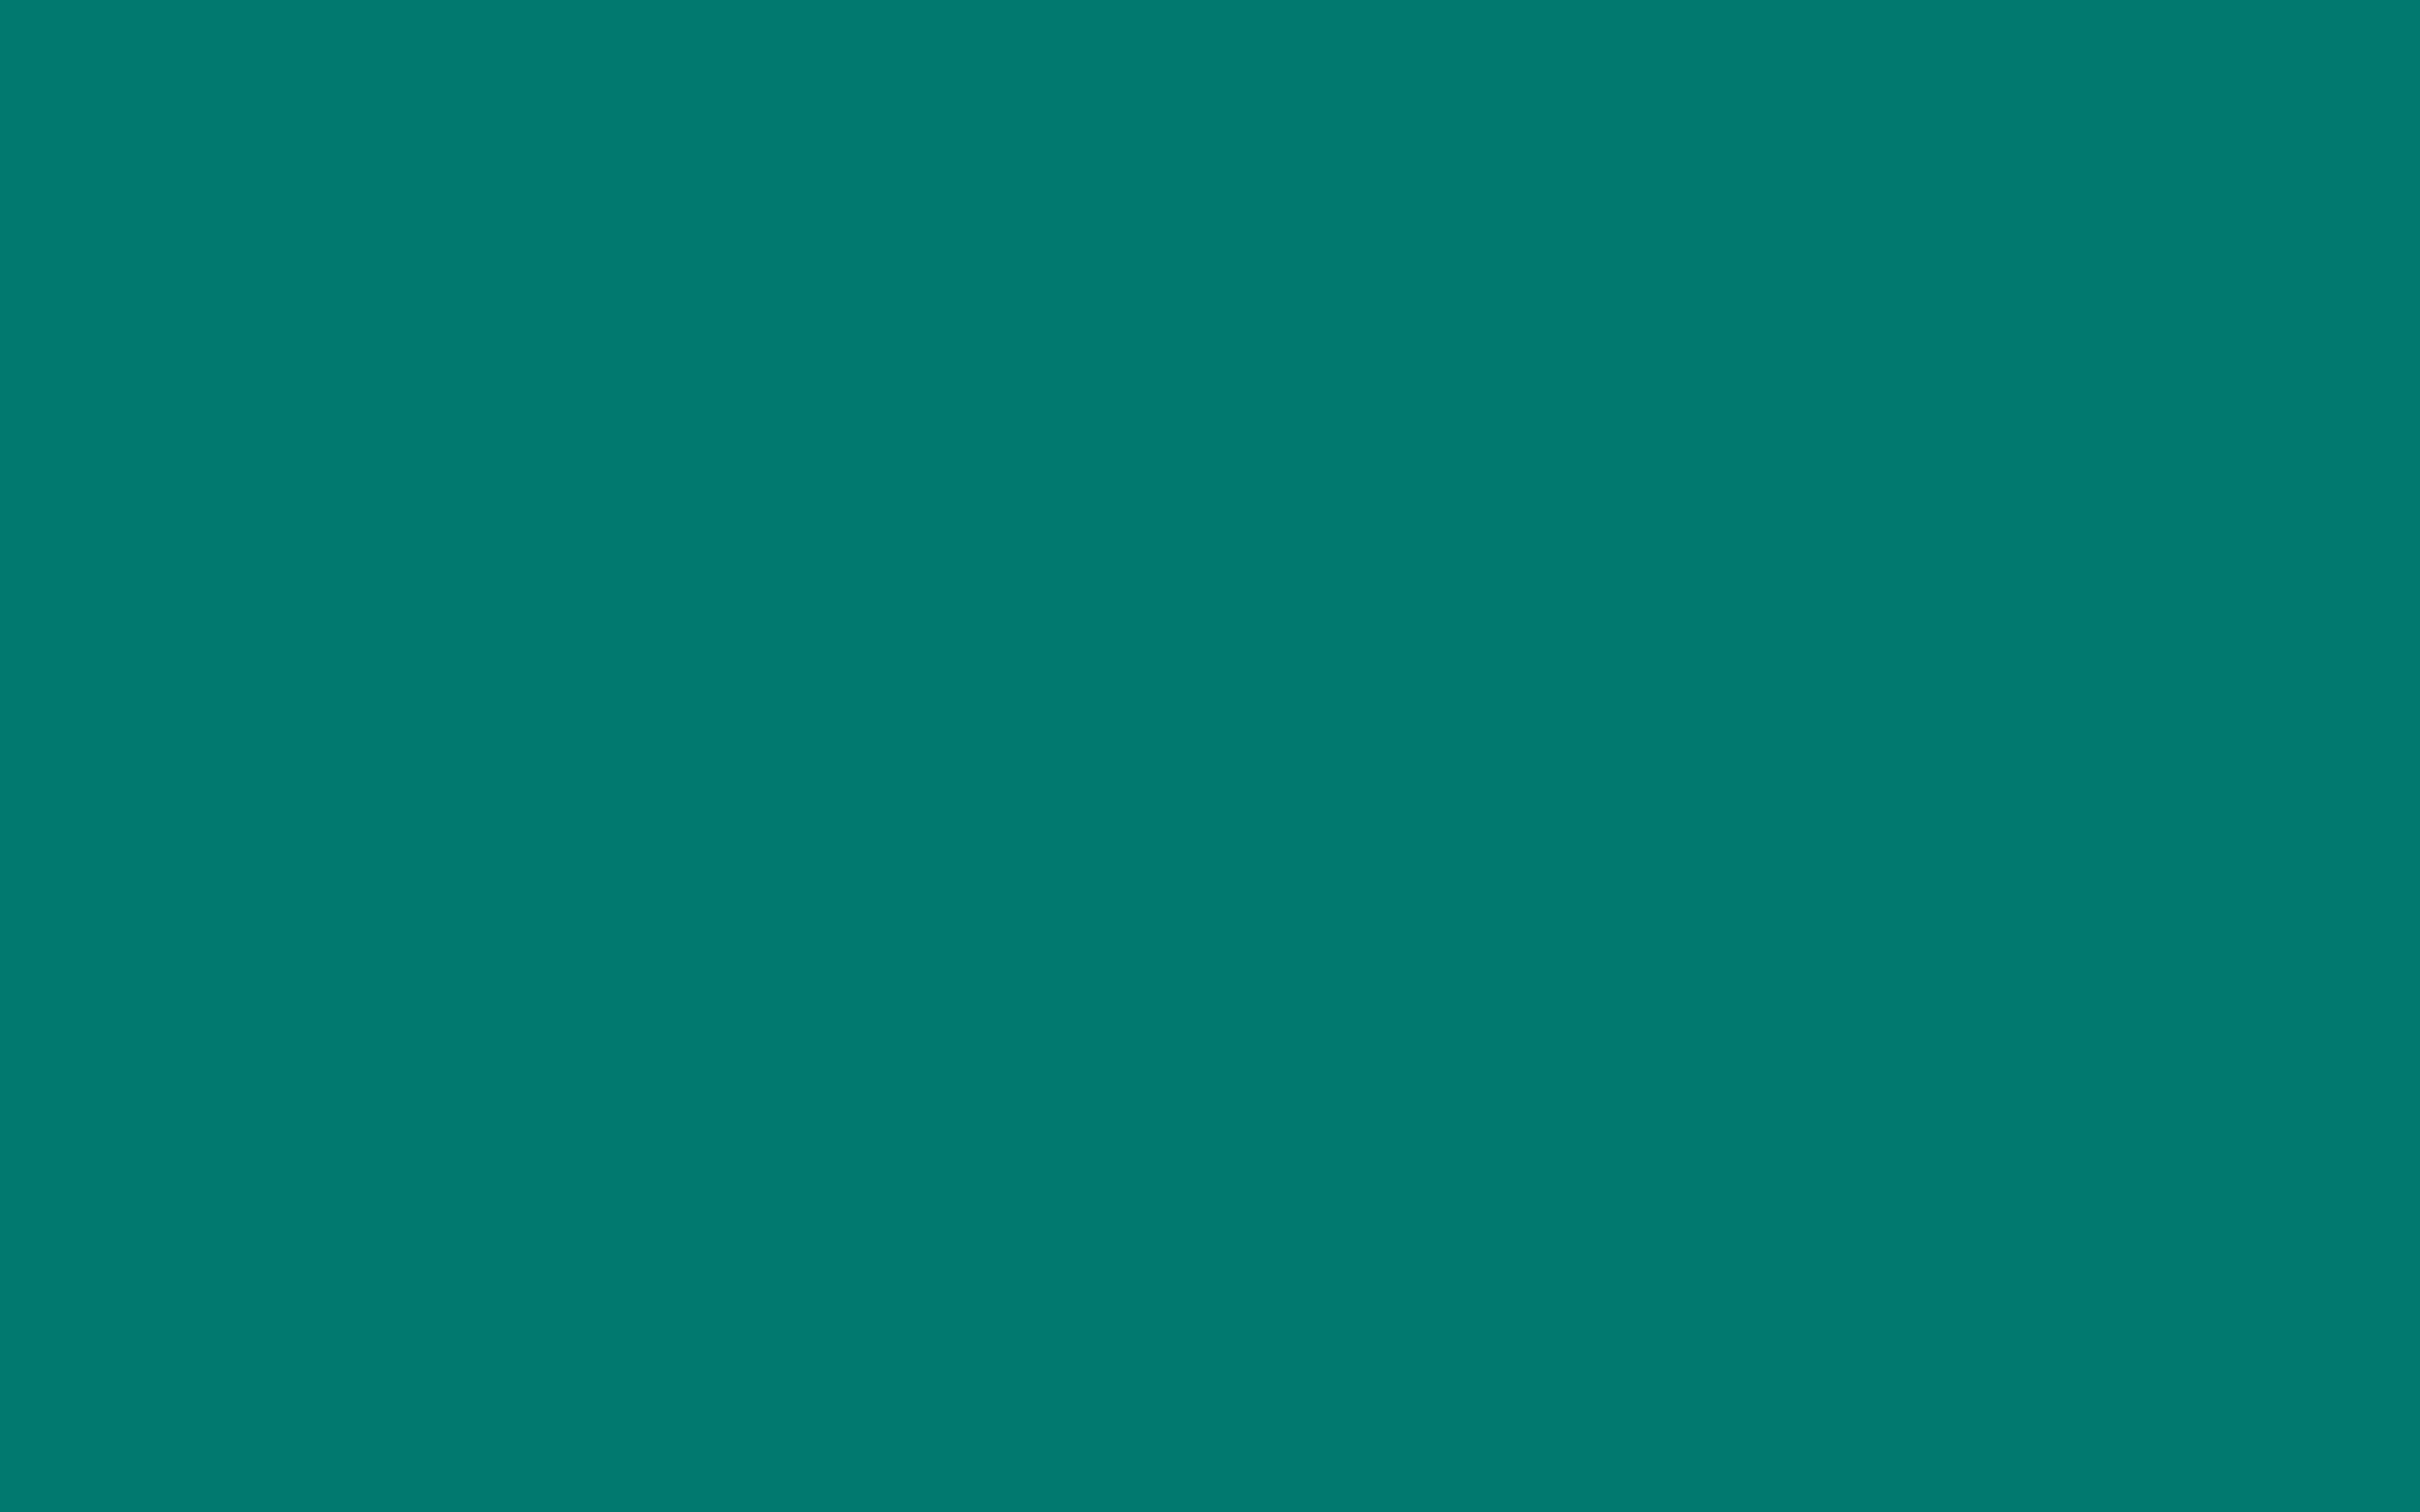 2880x1800 Pine Green Solid Color Background